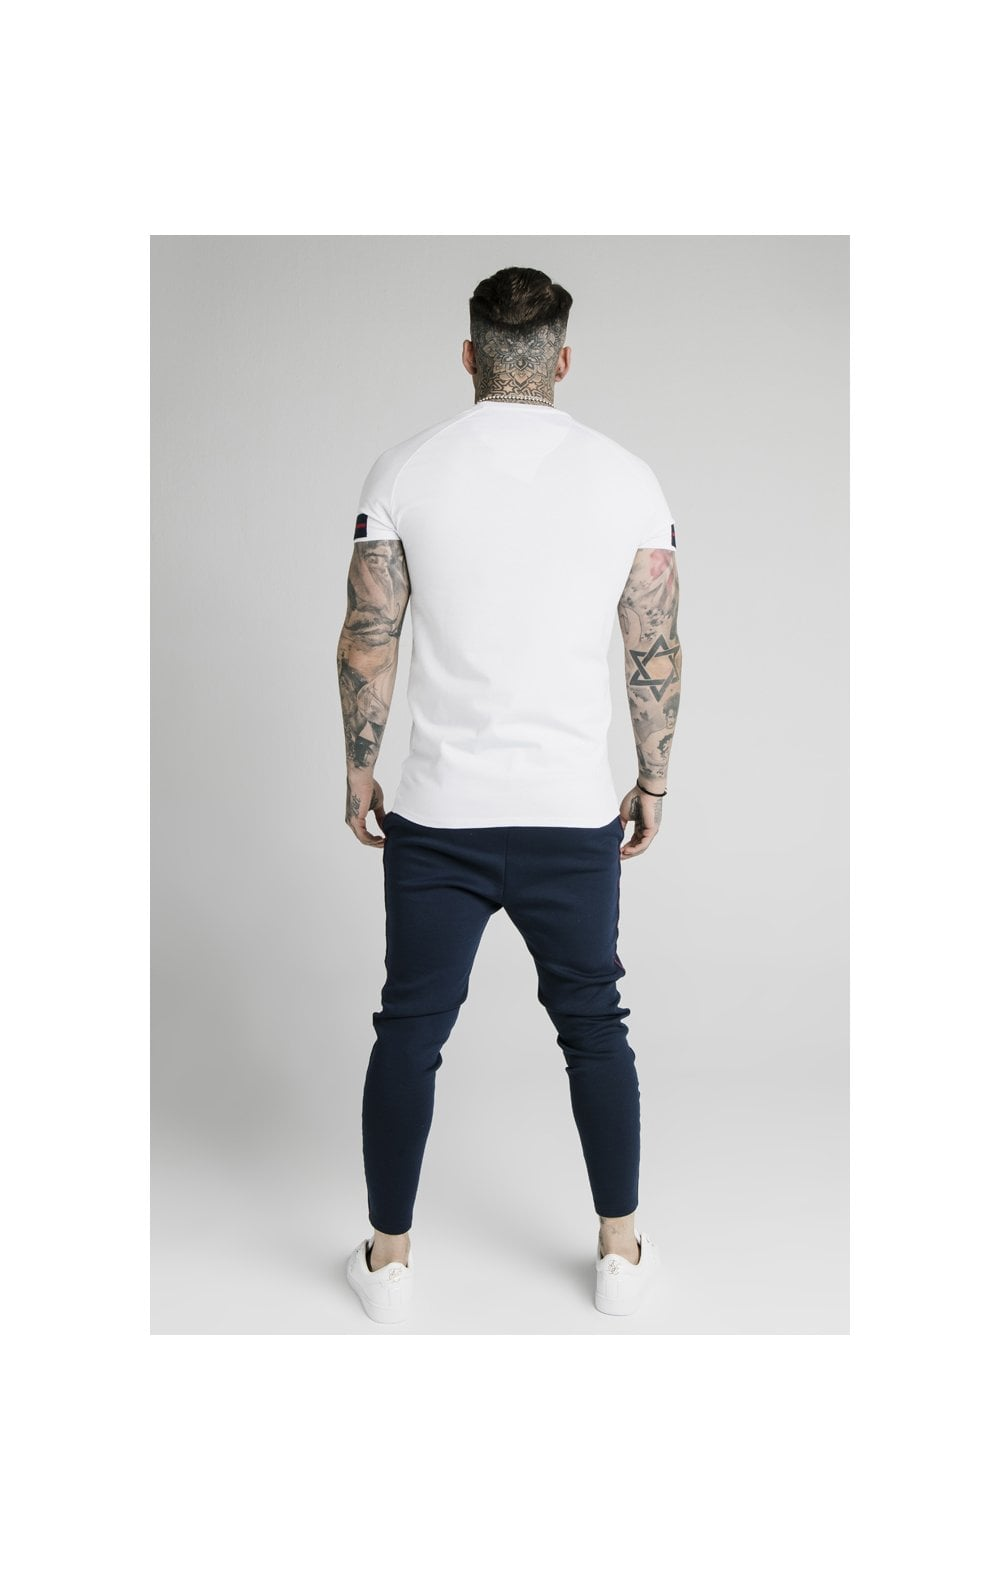 Load image into Gallery viewer, SikSilk Raglan Tech Tee Exposed Tape - White (7)